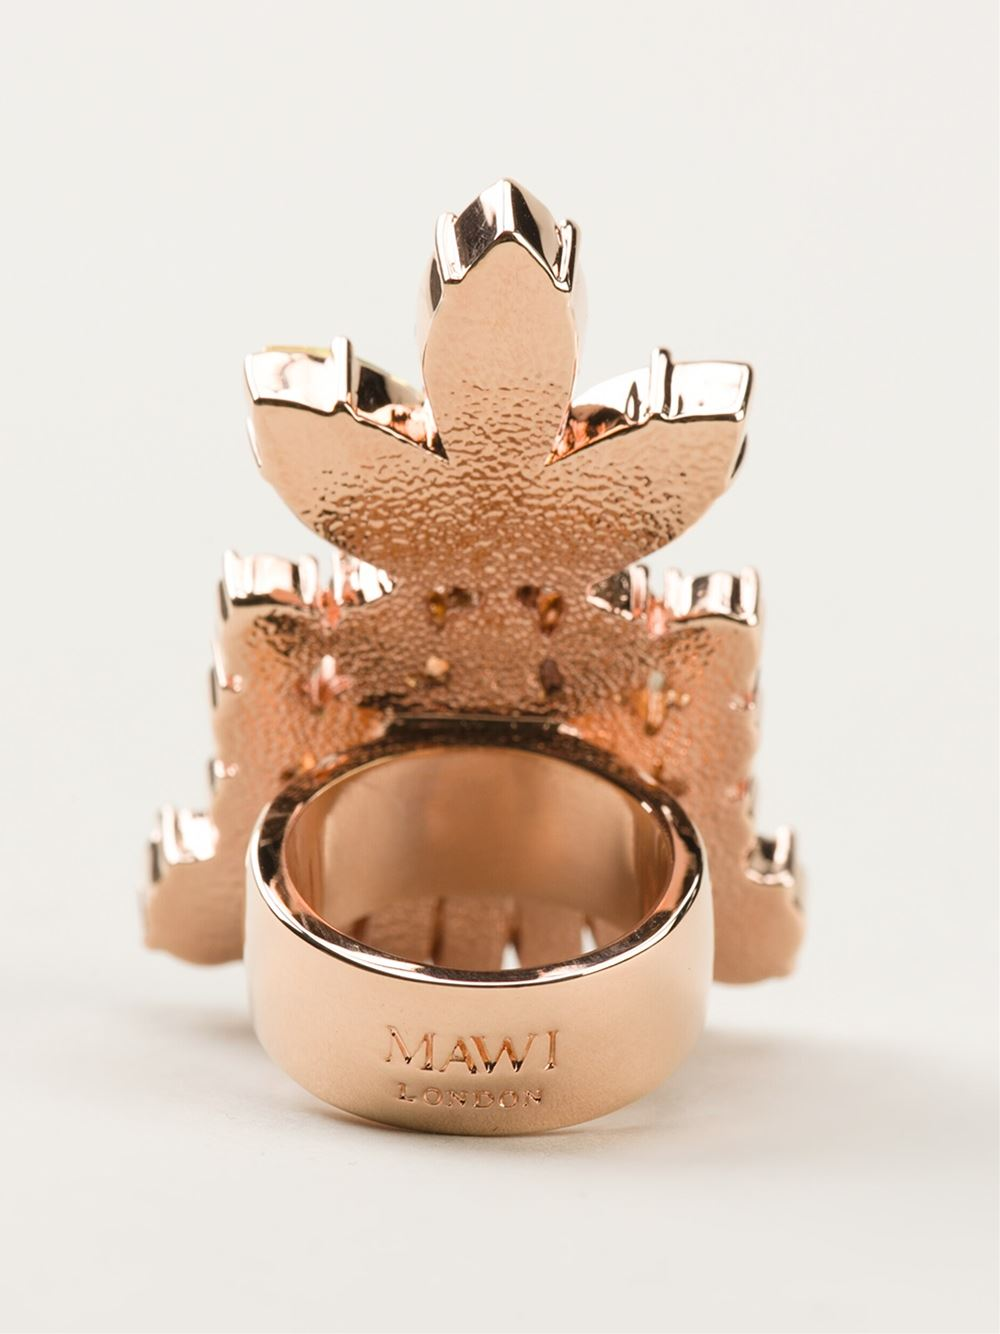 Mawi Embellished Chunky Ring - Nike - Via Verdi - Farfetch.com